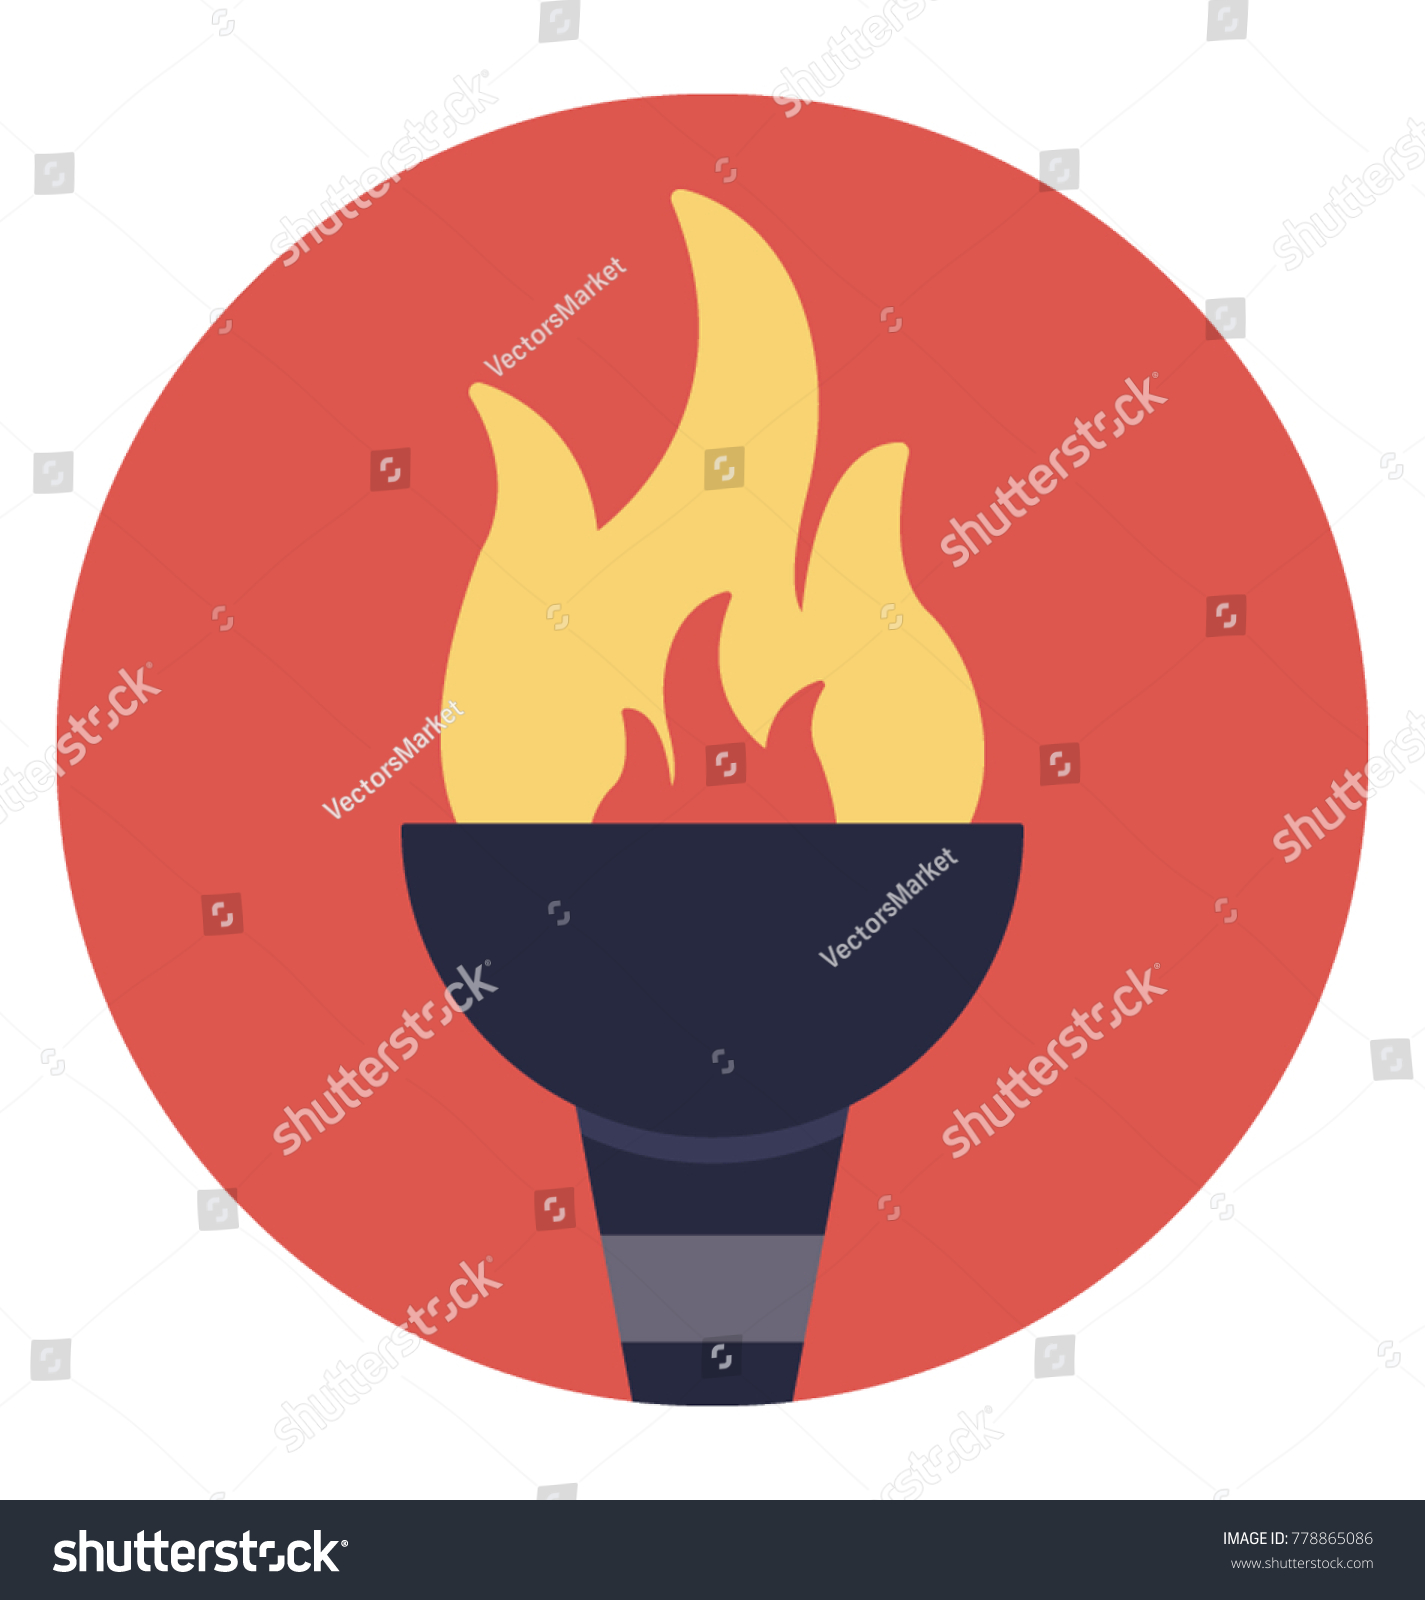 Olympic Torch Inauguration Olympic Games Symbolic Stock Vector